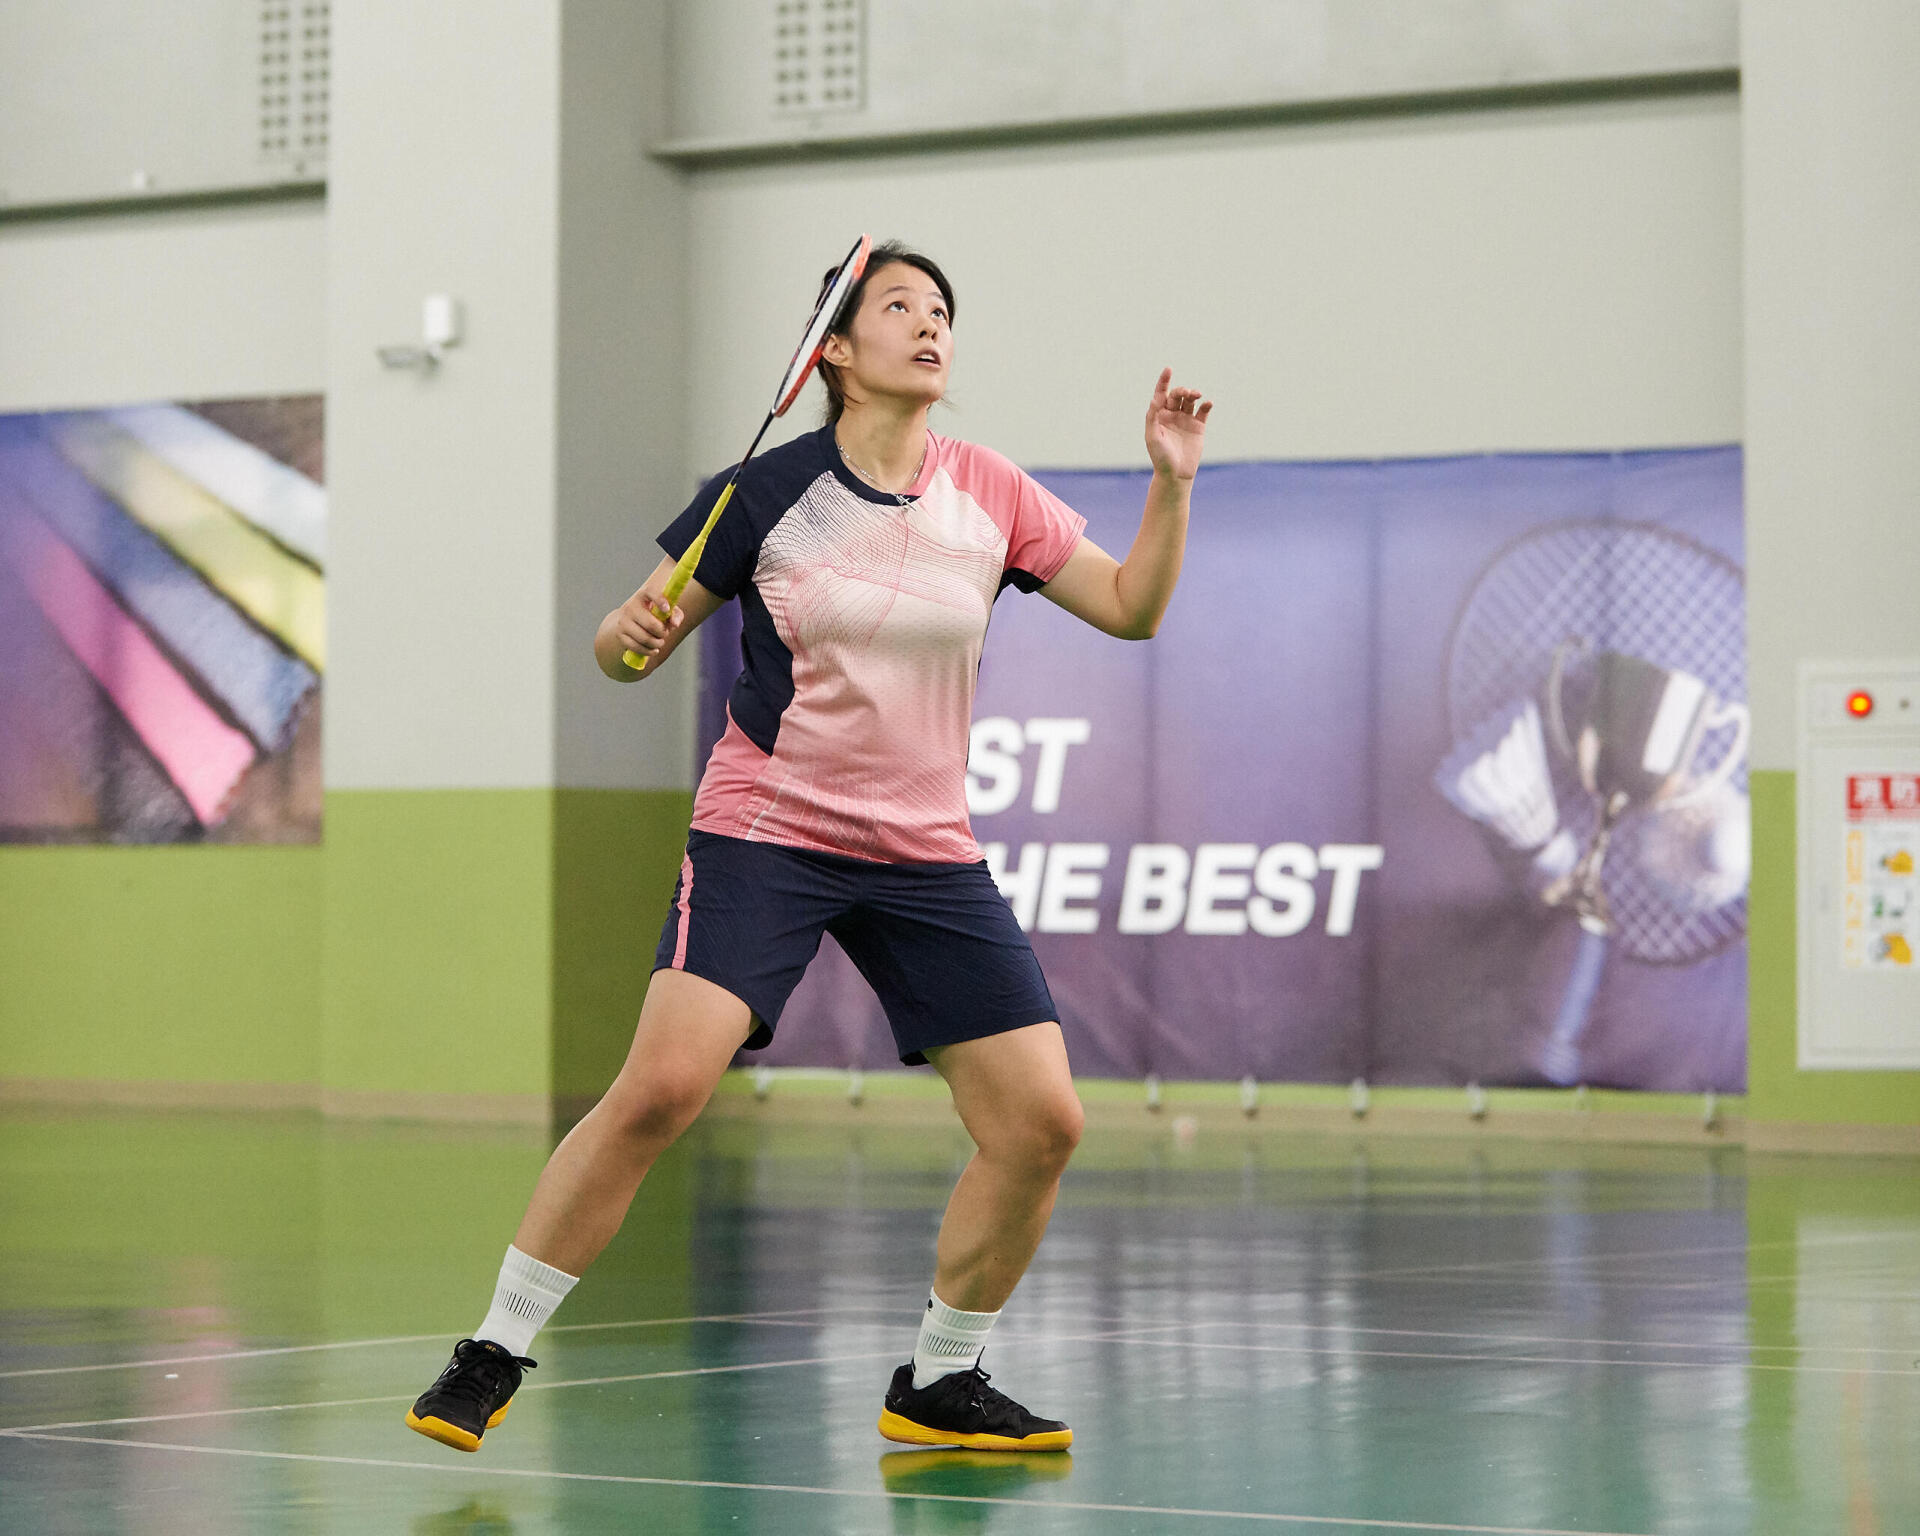 WEB dsk mob tab other  it TW 2019 Badminton